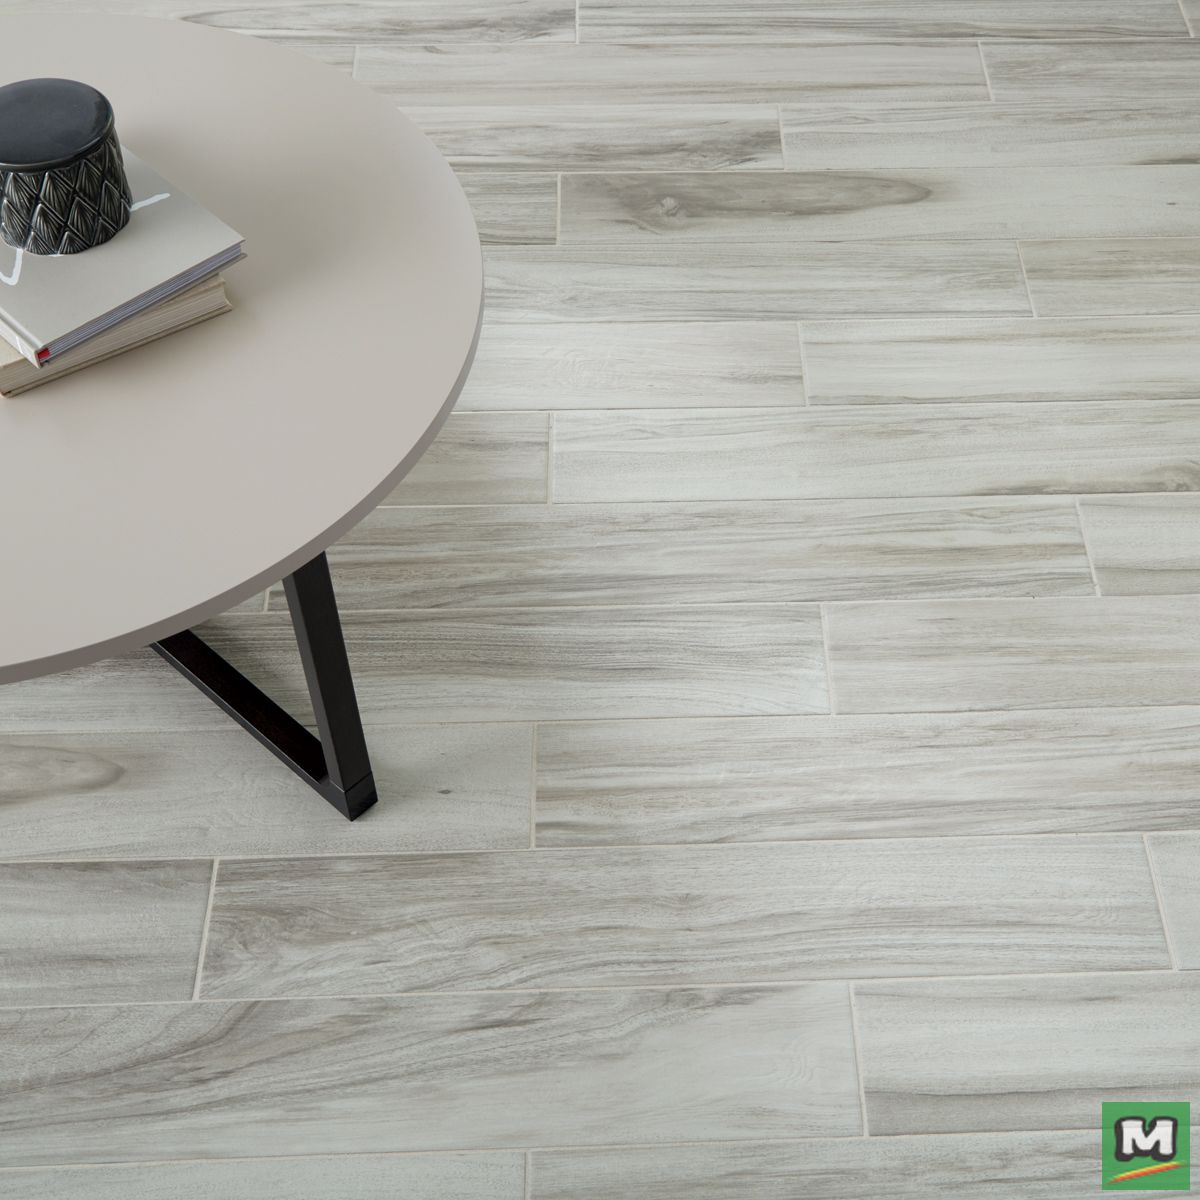 The Ragno USA® Lynwood Porcelain Floor and Wall Tile is